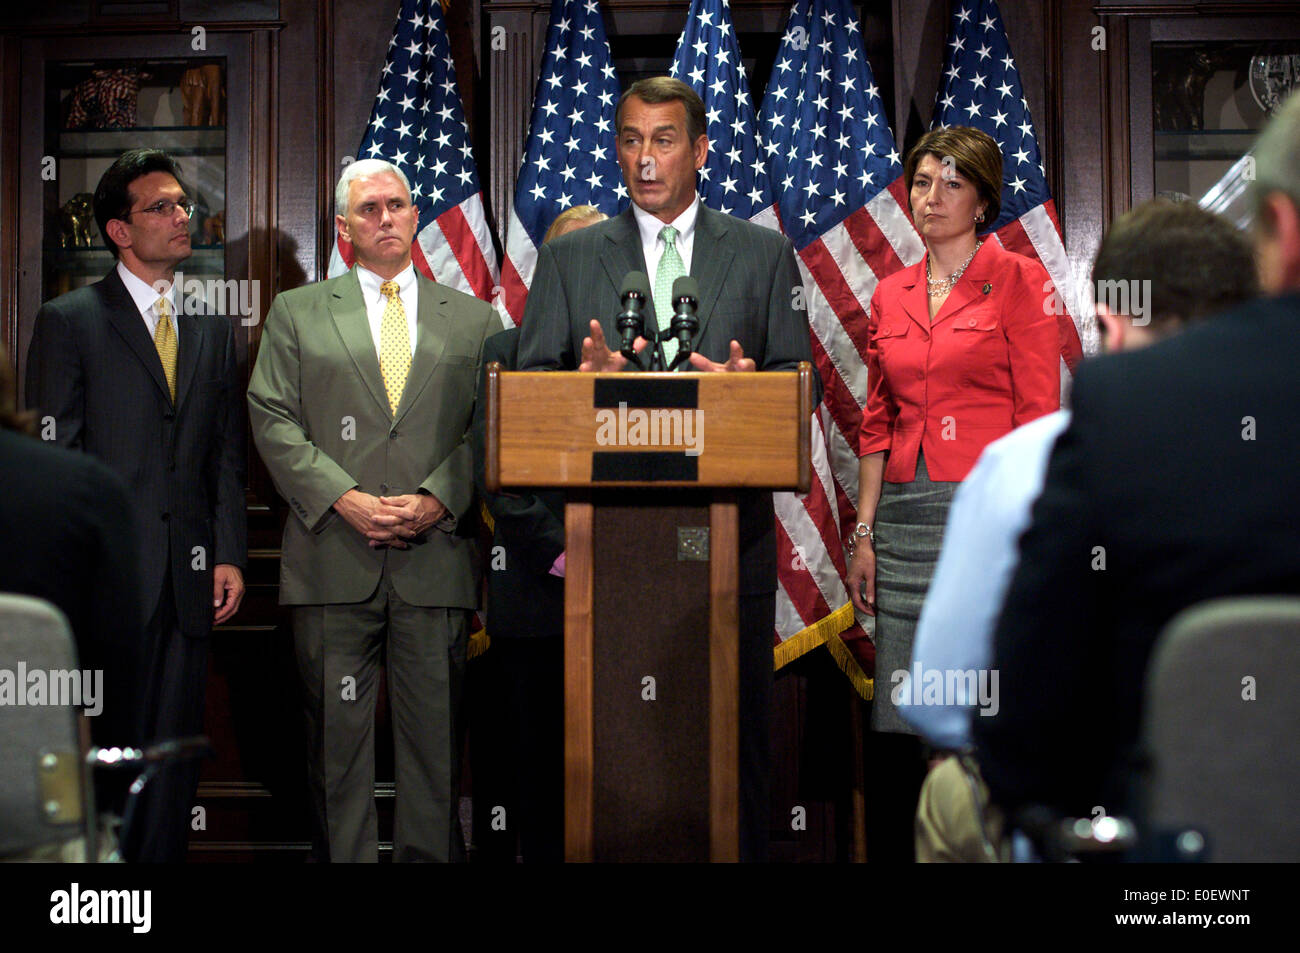 US House Minority Leader Rep. John Boehner holds a press conference to announce four appointments to the 10-member Financial Crisis Inquiry Commission that Congress established to investigate the causes of the financial crisis and the collapse of major financial institutions July 14, 2009 in Washington, DC. - Stock Image